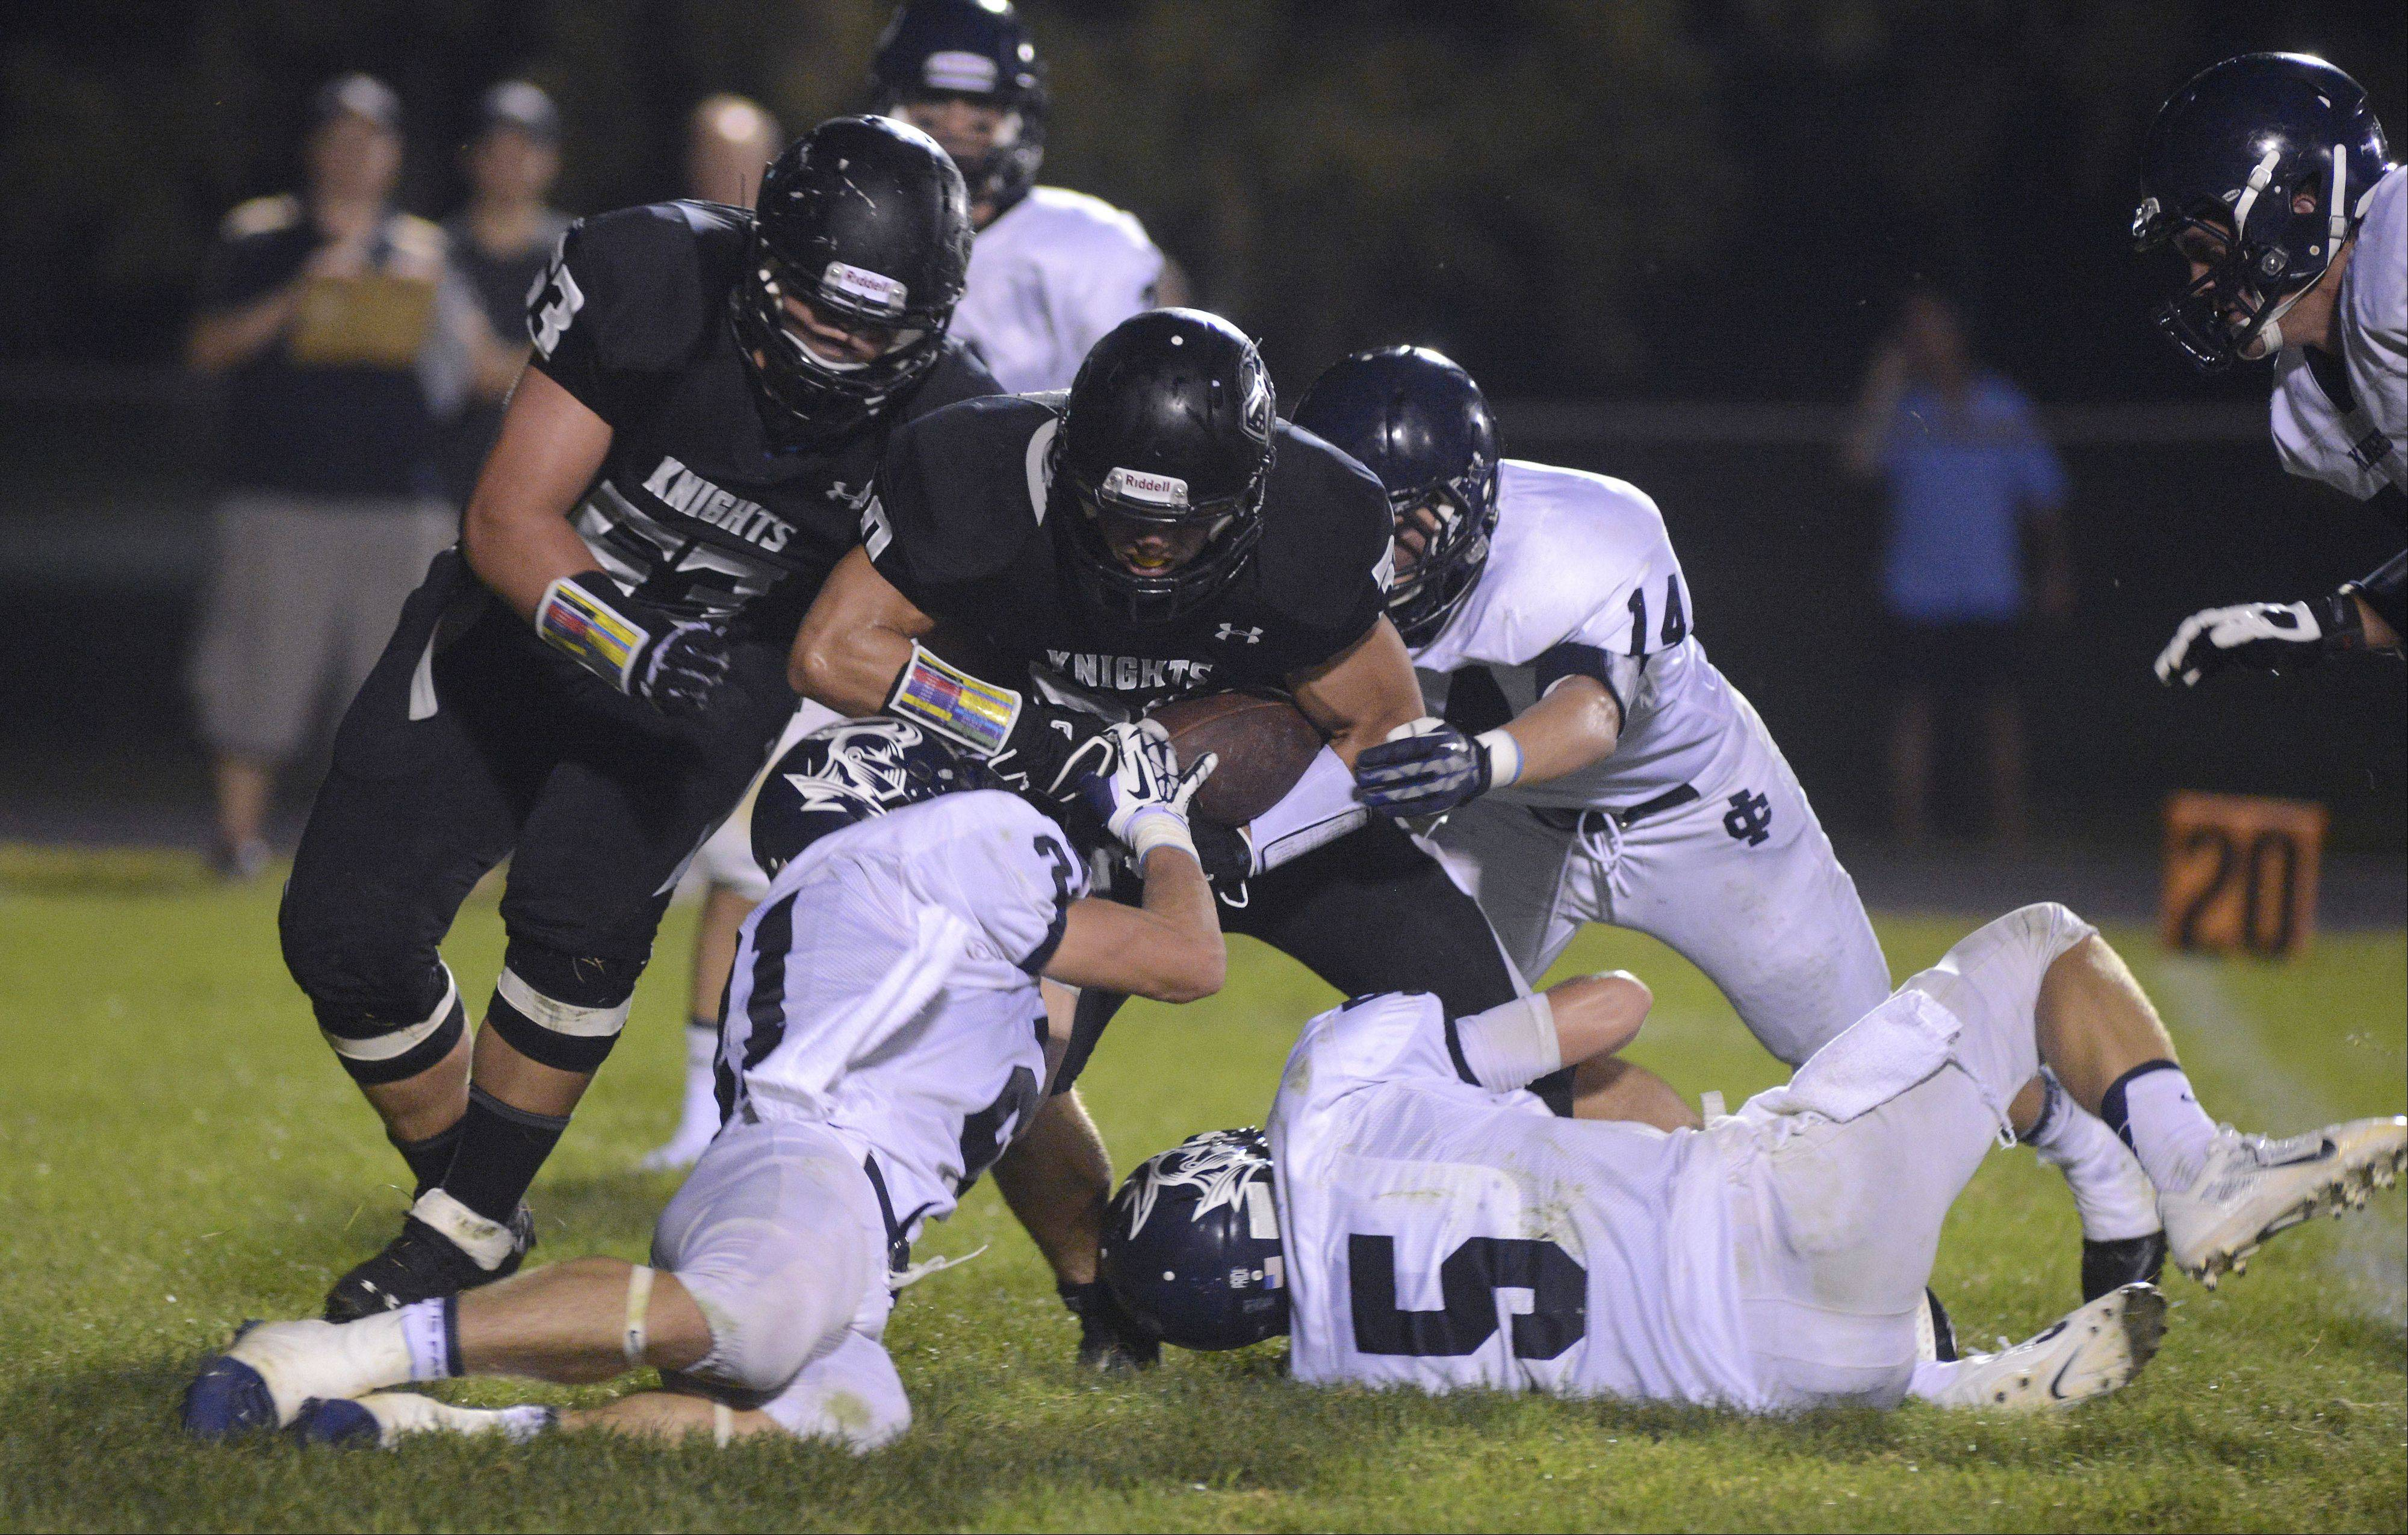 Kaneland's Jesse Balluff hunkers down with the ball while being tackled by IC Catholic Prep's James Janowski (21), Sean Sutton (5) and Max Eichhorn (14) in the first quarter on Friday, September 6.